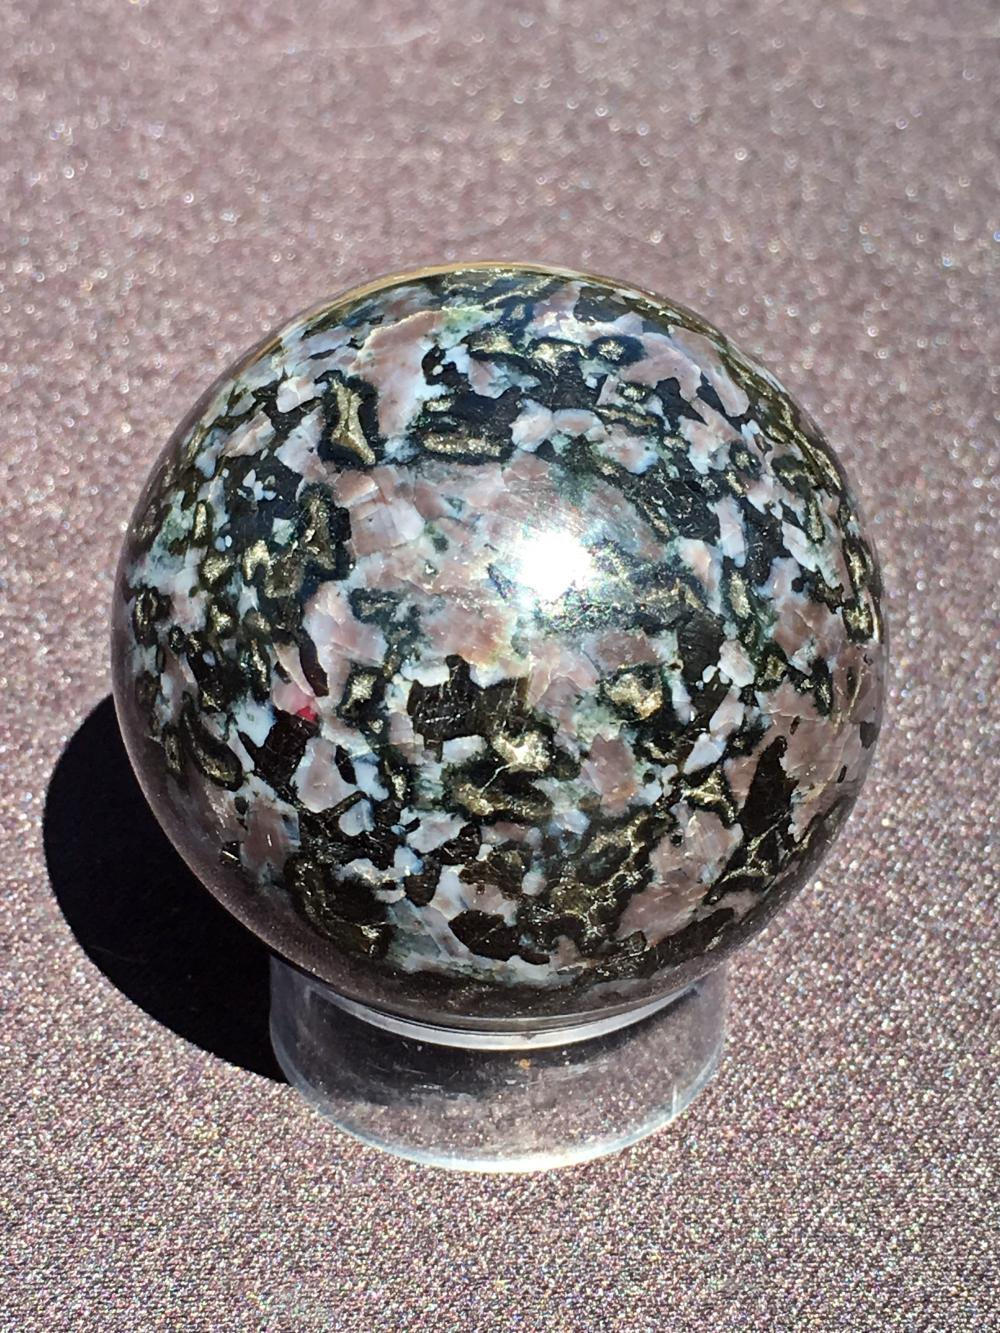 Lot 100: Gabbro, Rock, Crystal, Natural, Collectible, Carving, Sphere